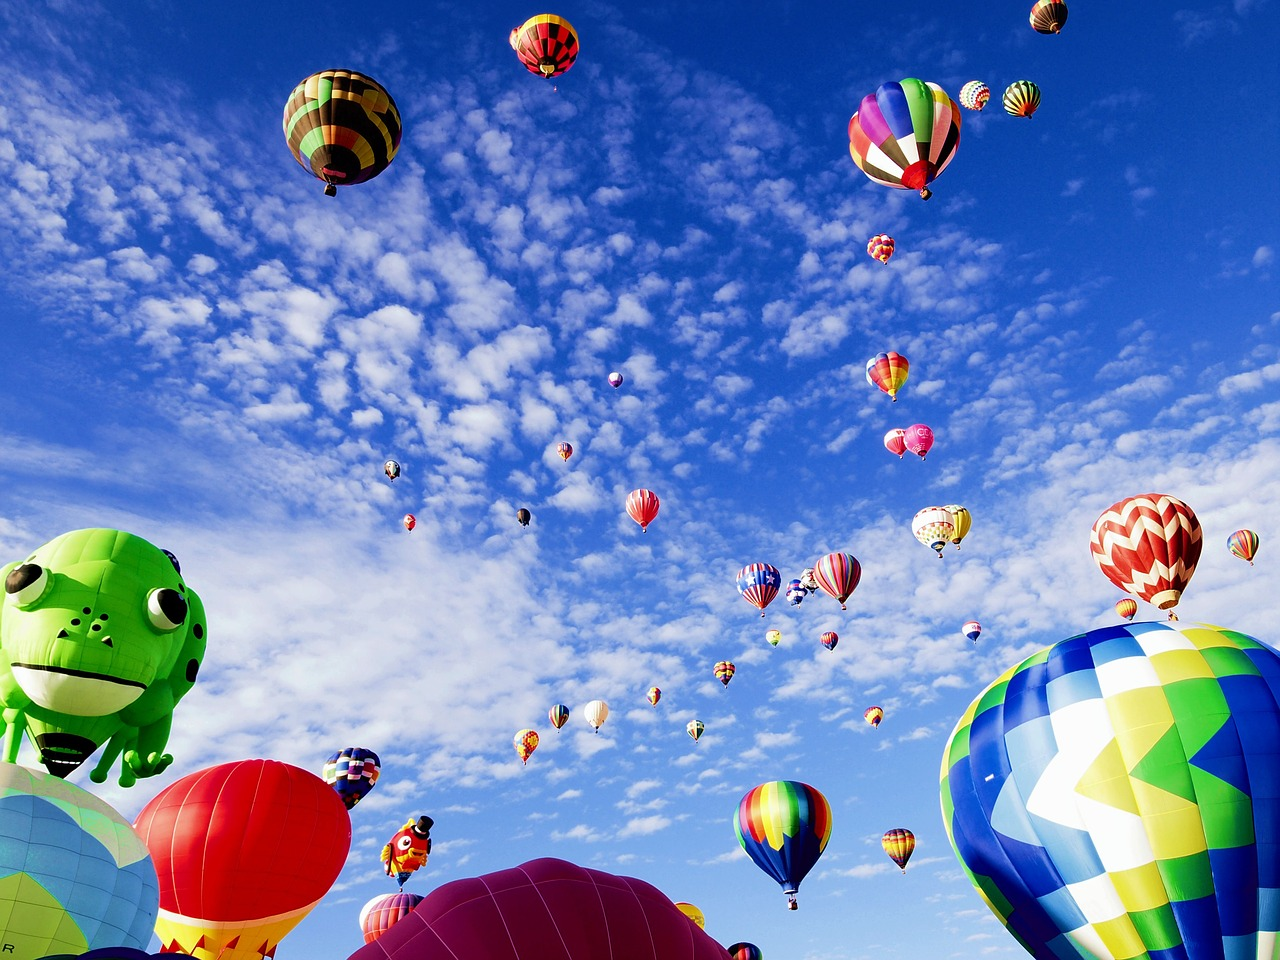 Hundreds of hot air balloons in the sky.